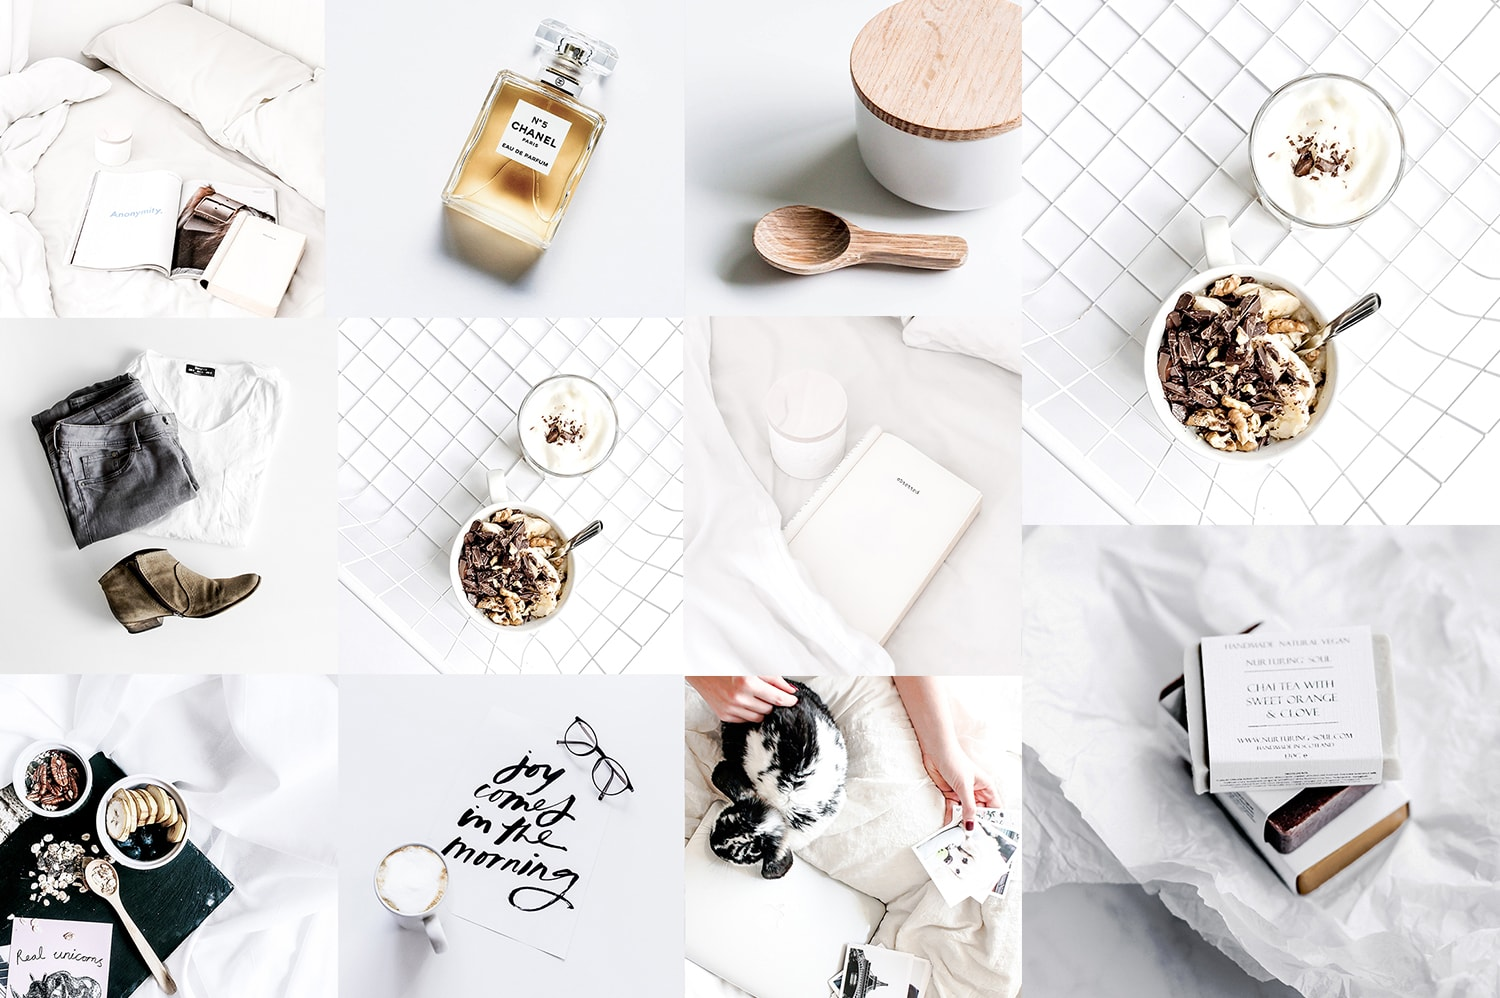 White Product Photography Lightroom Presets for Mobile, by KIIN